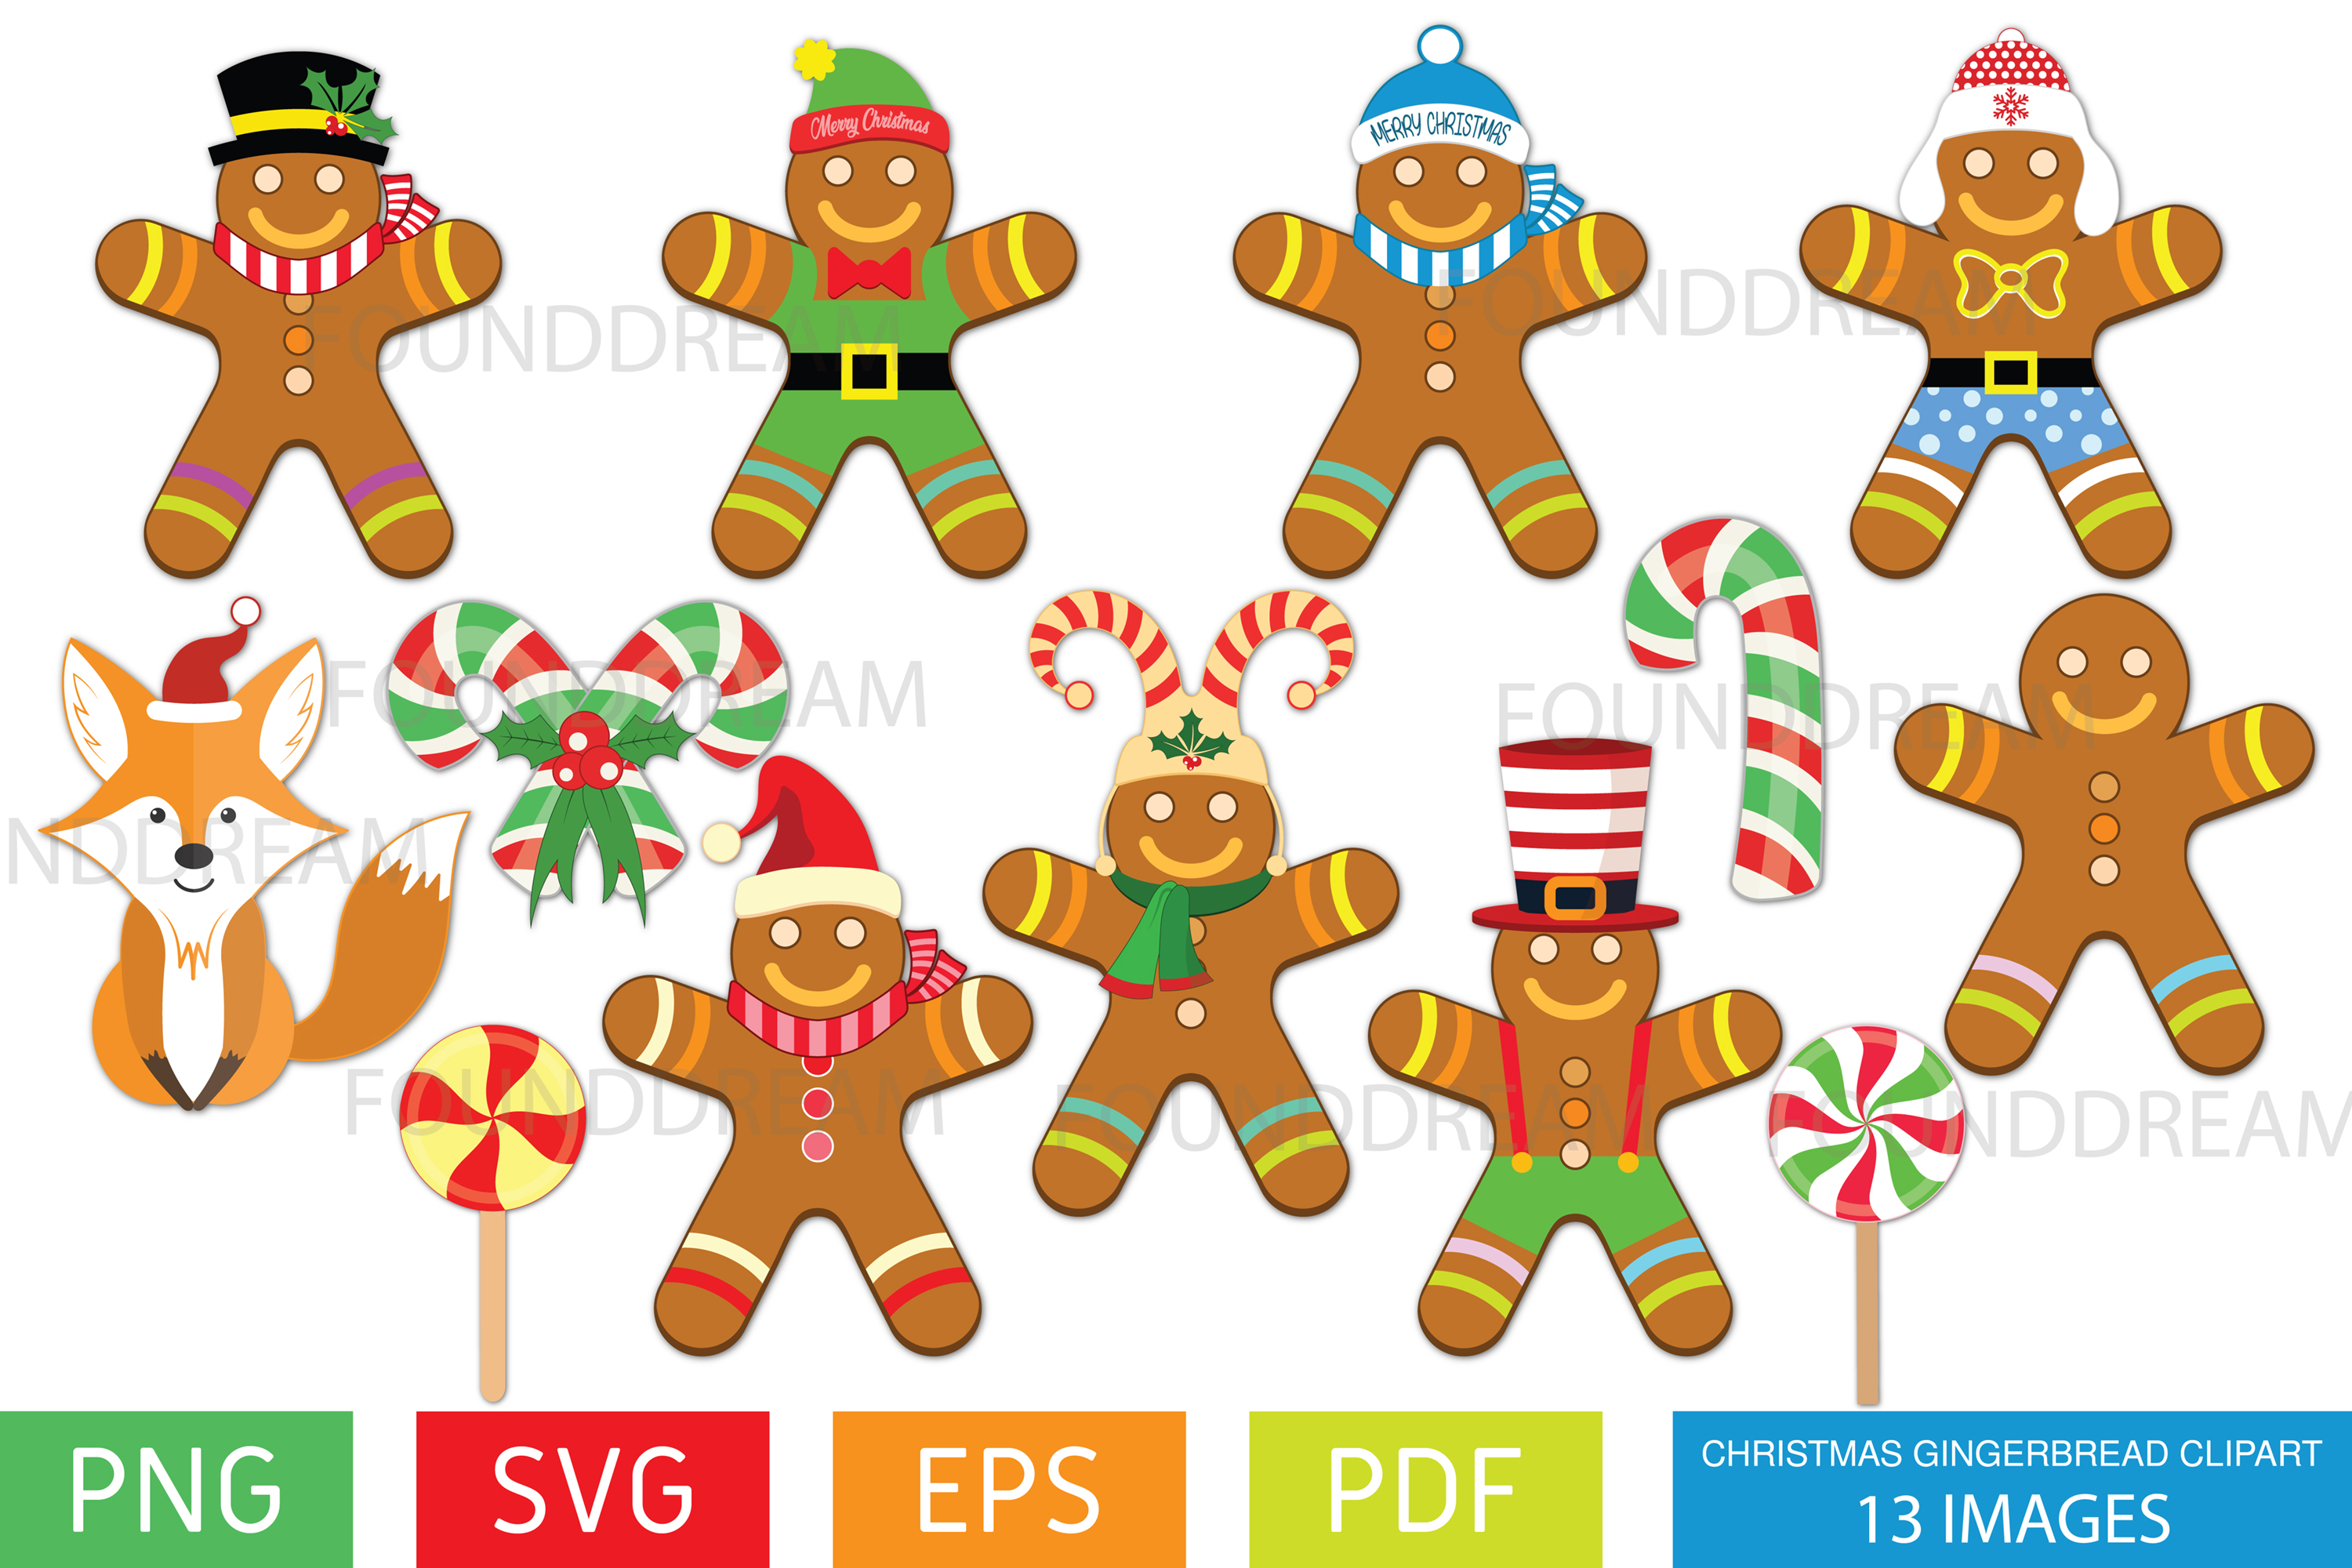 Christmas Gingerbread Clip art example image 1